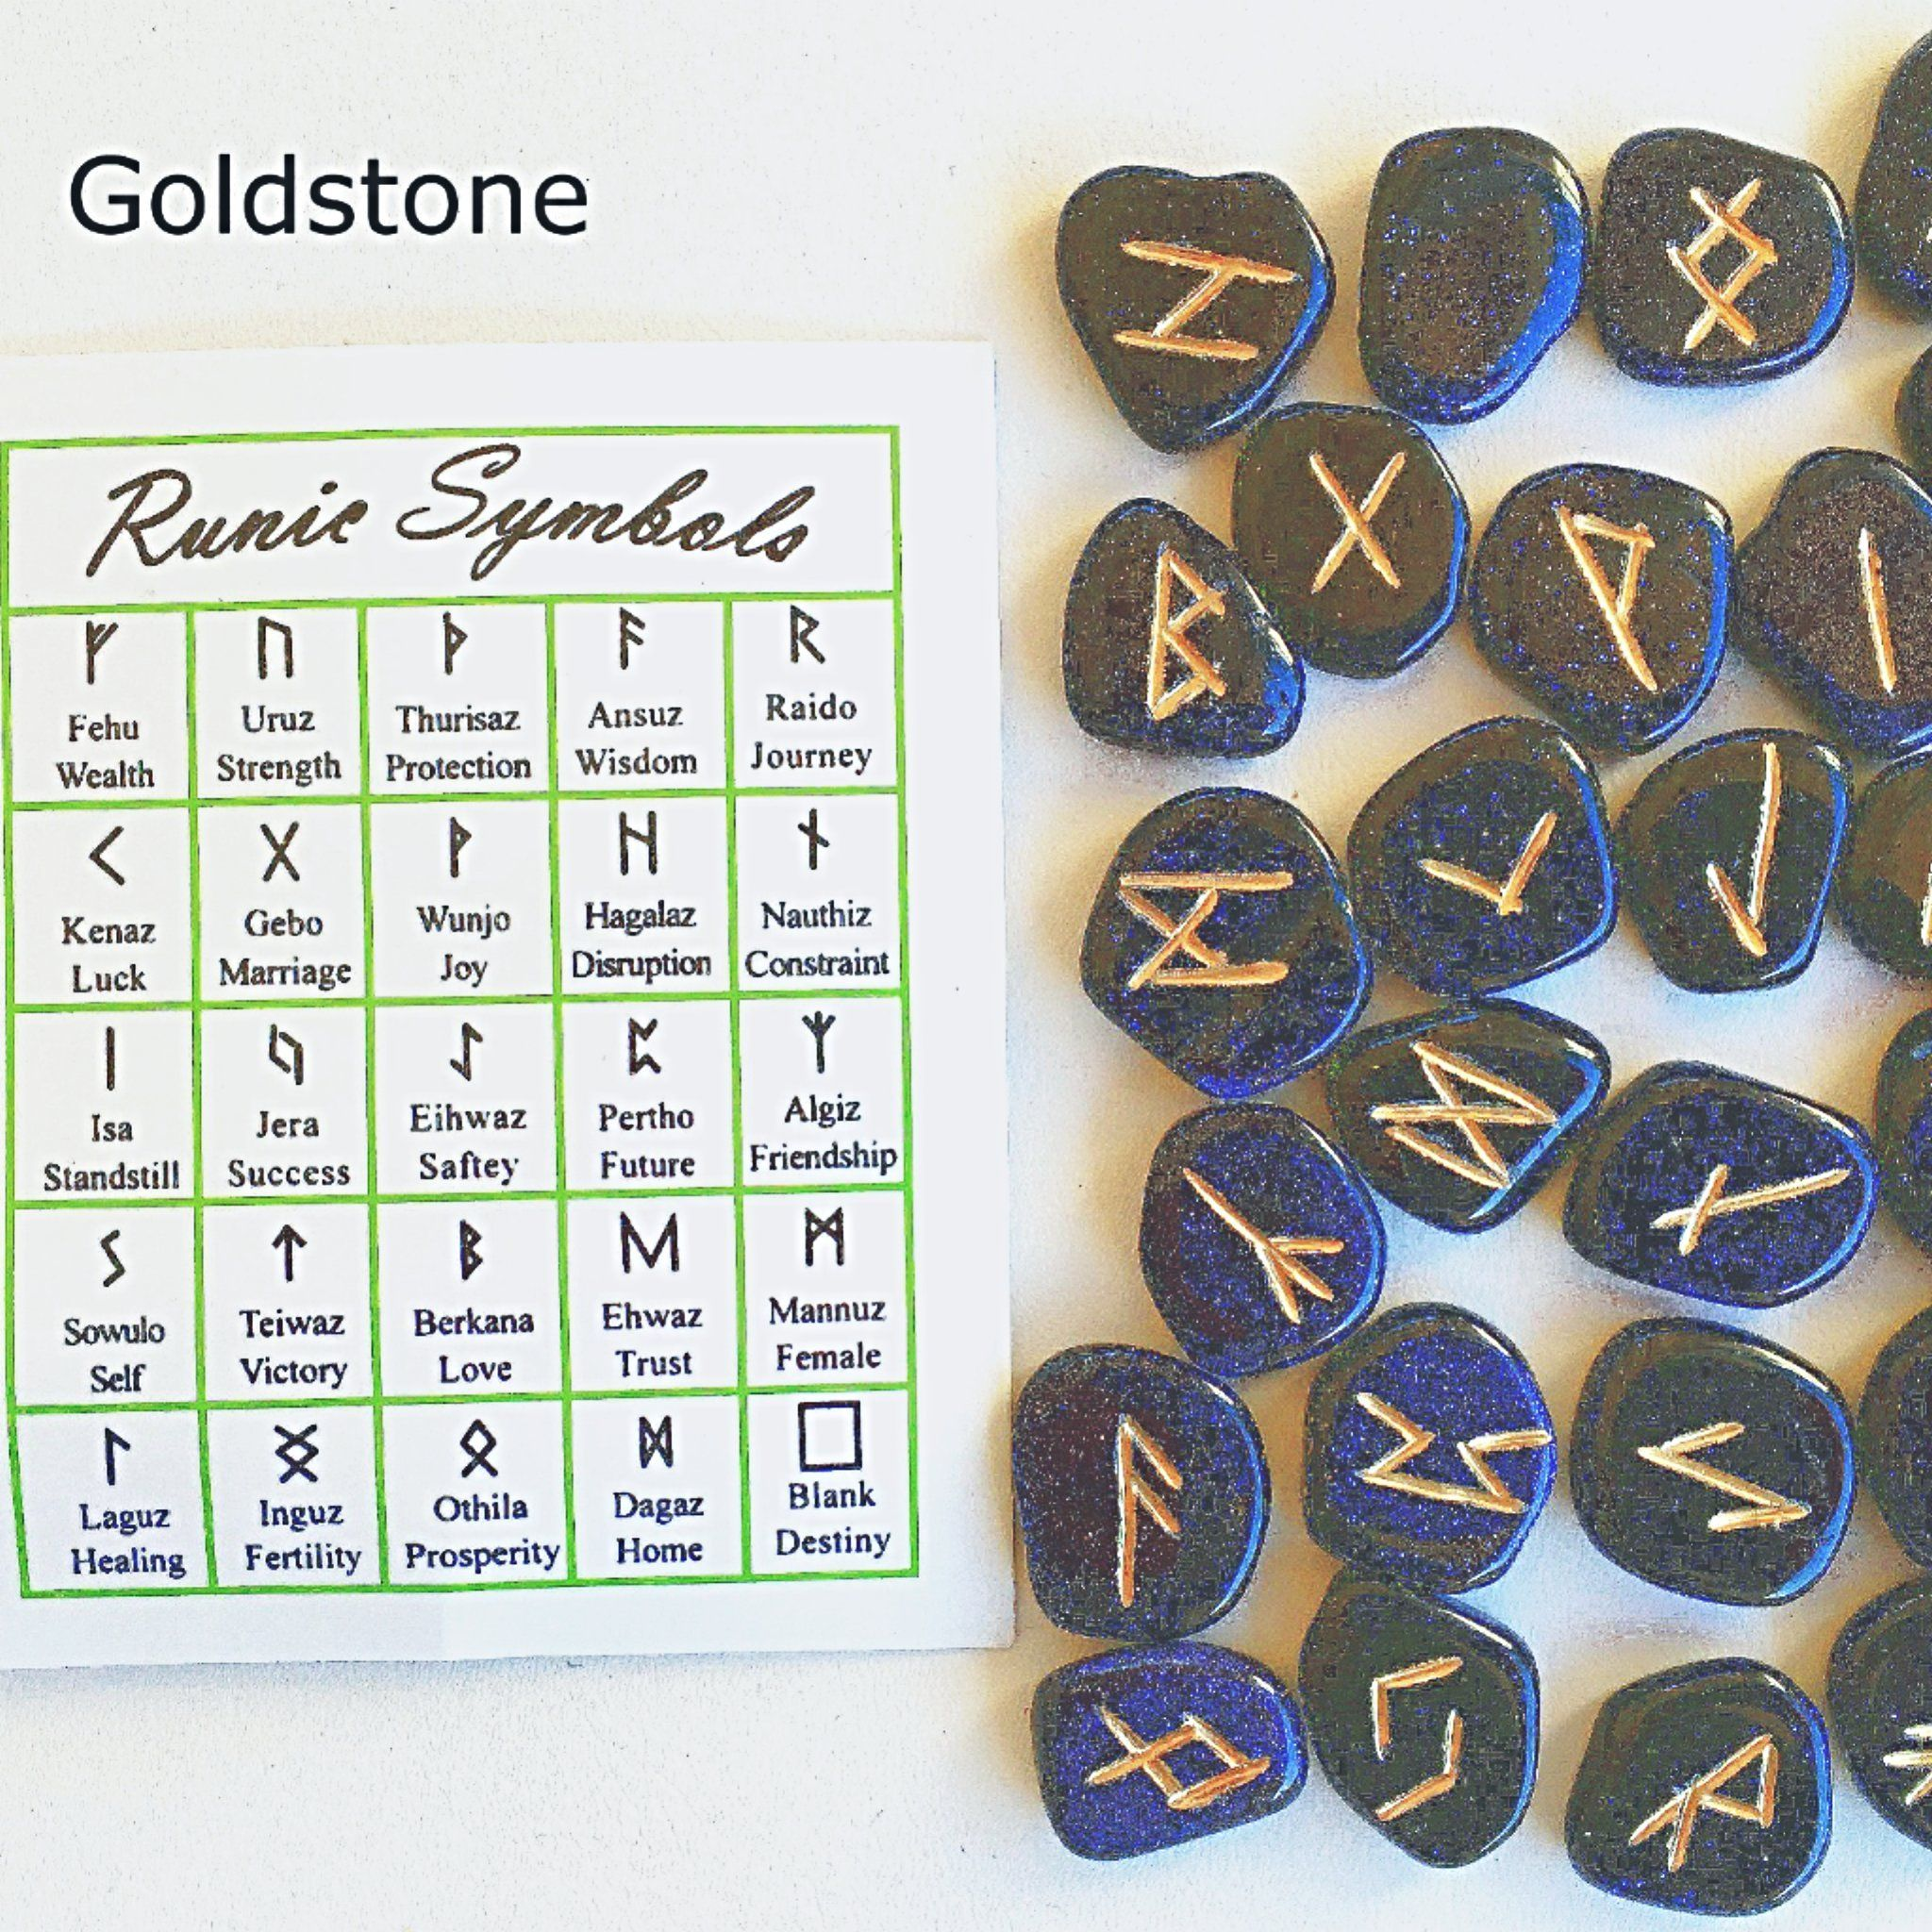 Blue Goldstone Rune Stones New Earth Gifts In 2021 Blue Goldstone Meaning Rune Stones Earth Gift